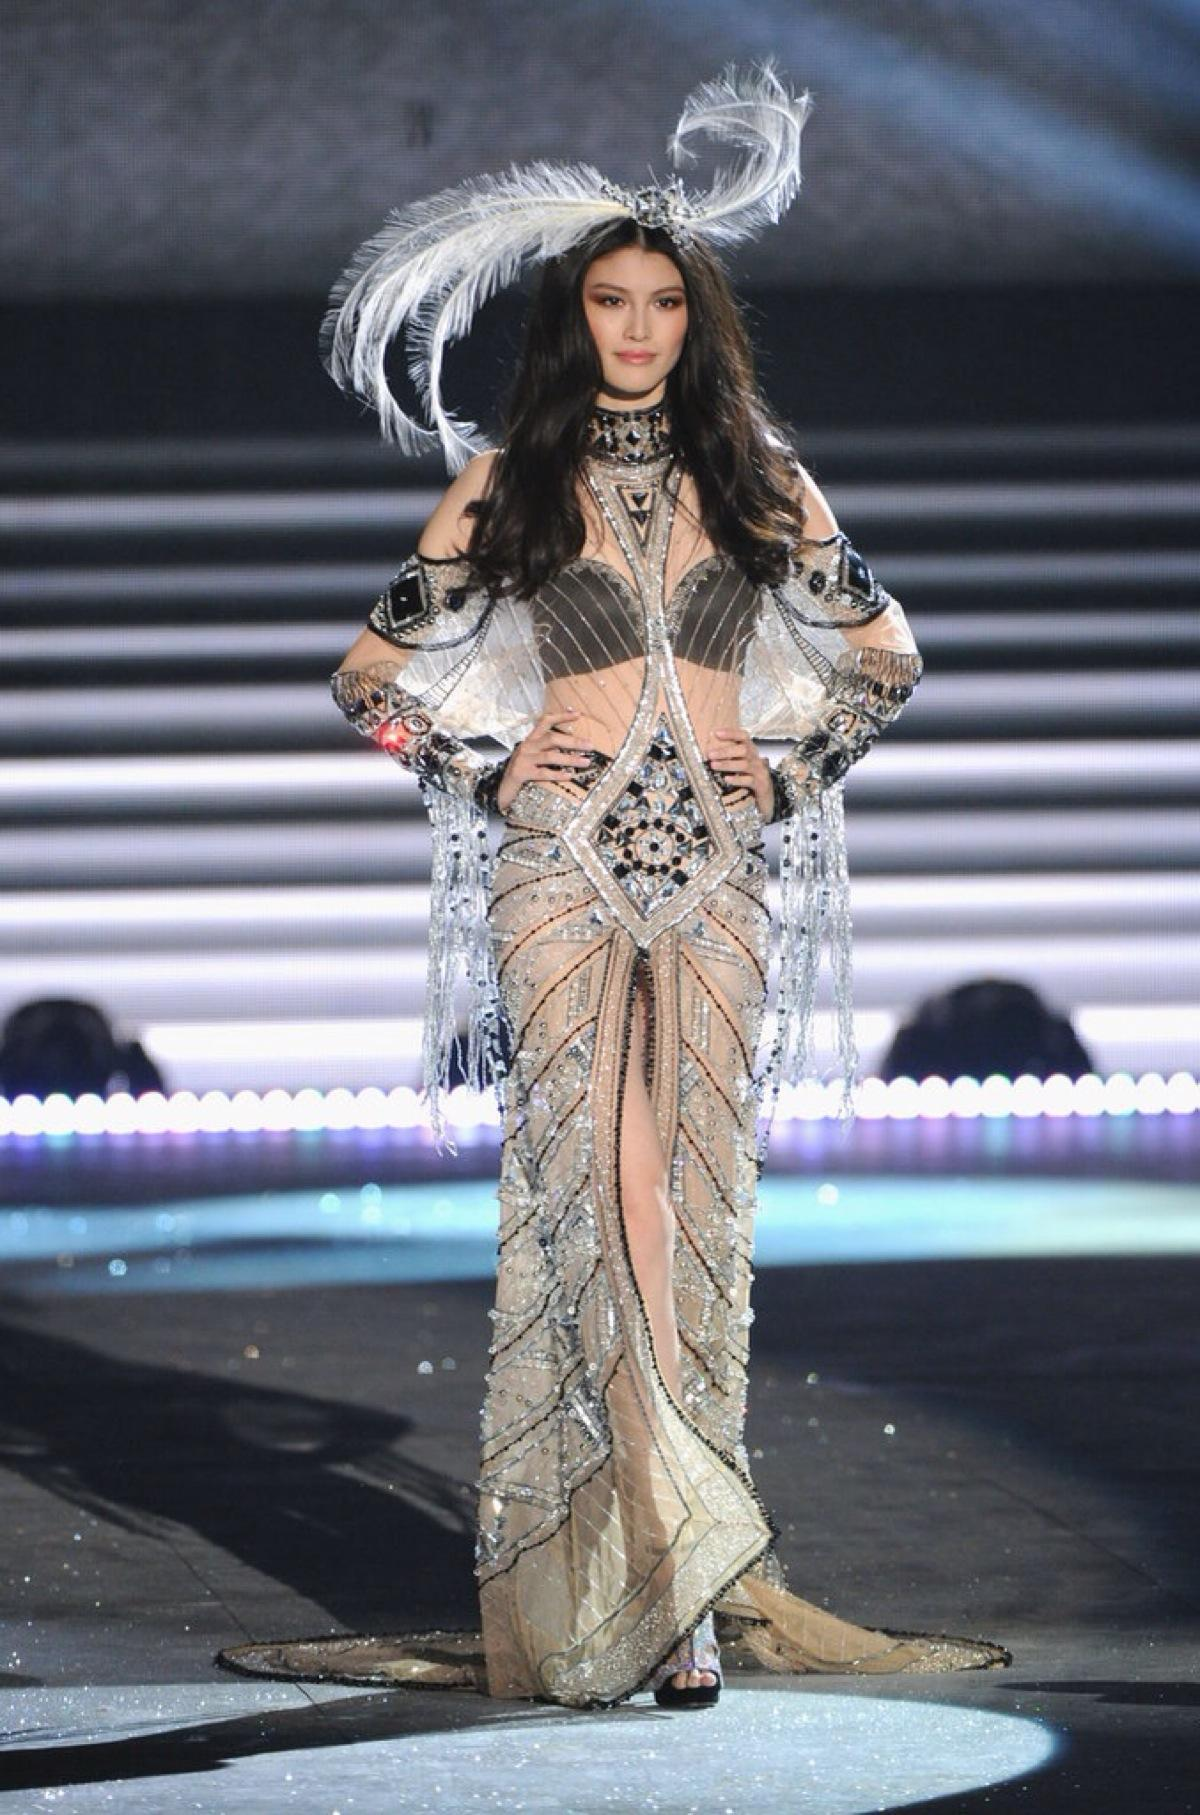 Dressmaking, Sewing and Fashion Design classes in Hong Kong Transparent dress fashion show video